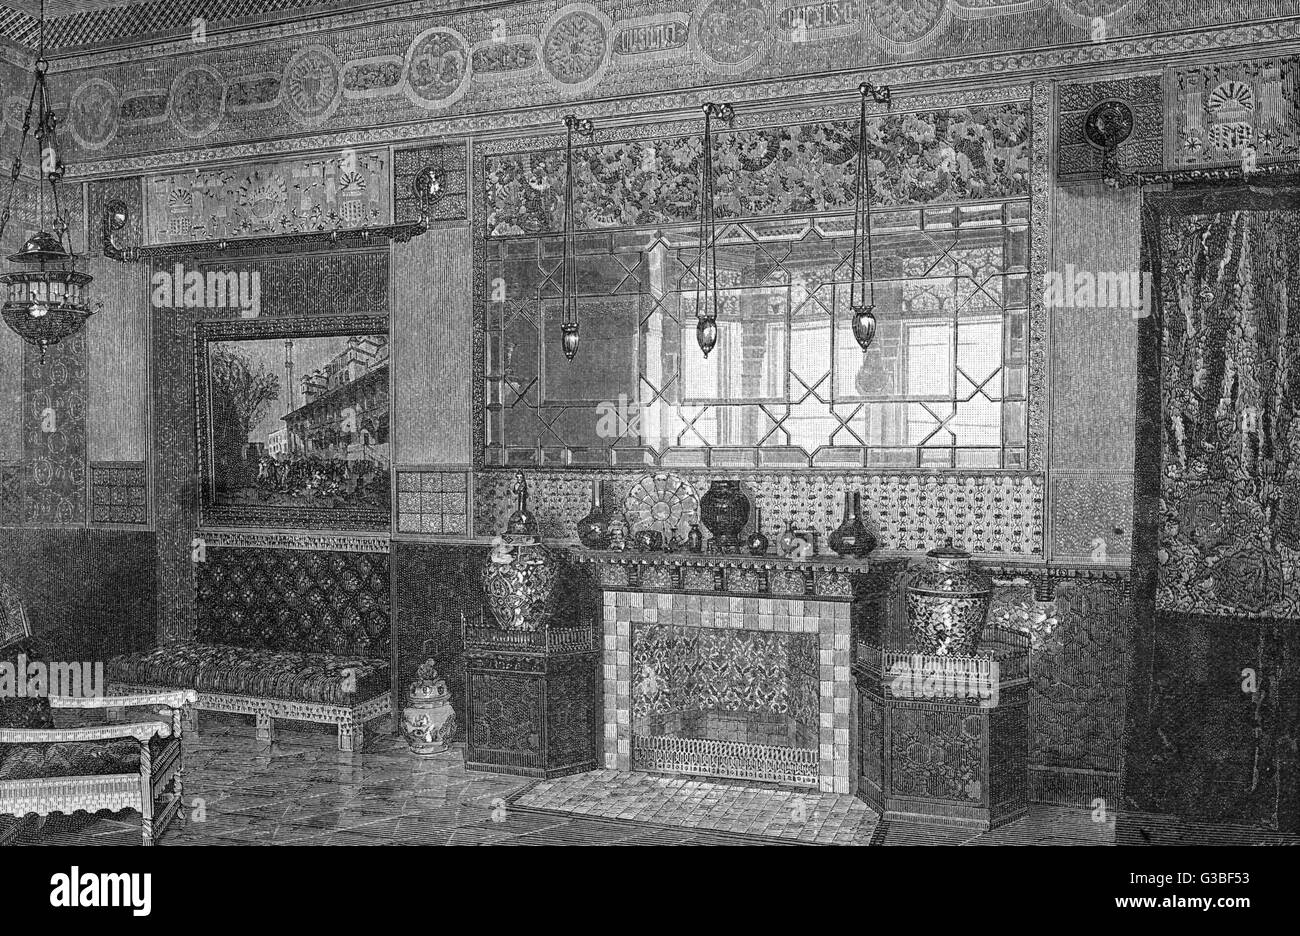 Parlour decoration by Louis C Tiffany and Co.         Date: 1884 - Stock Image